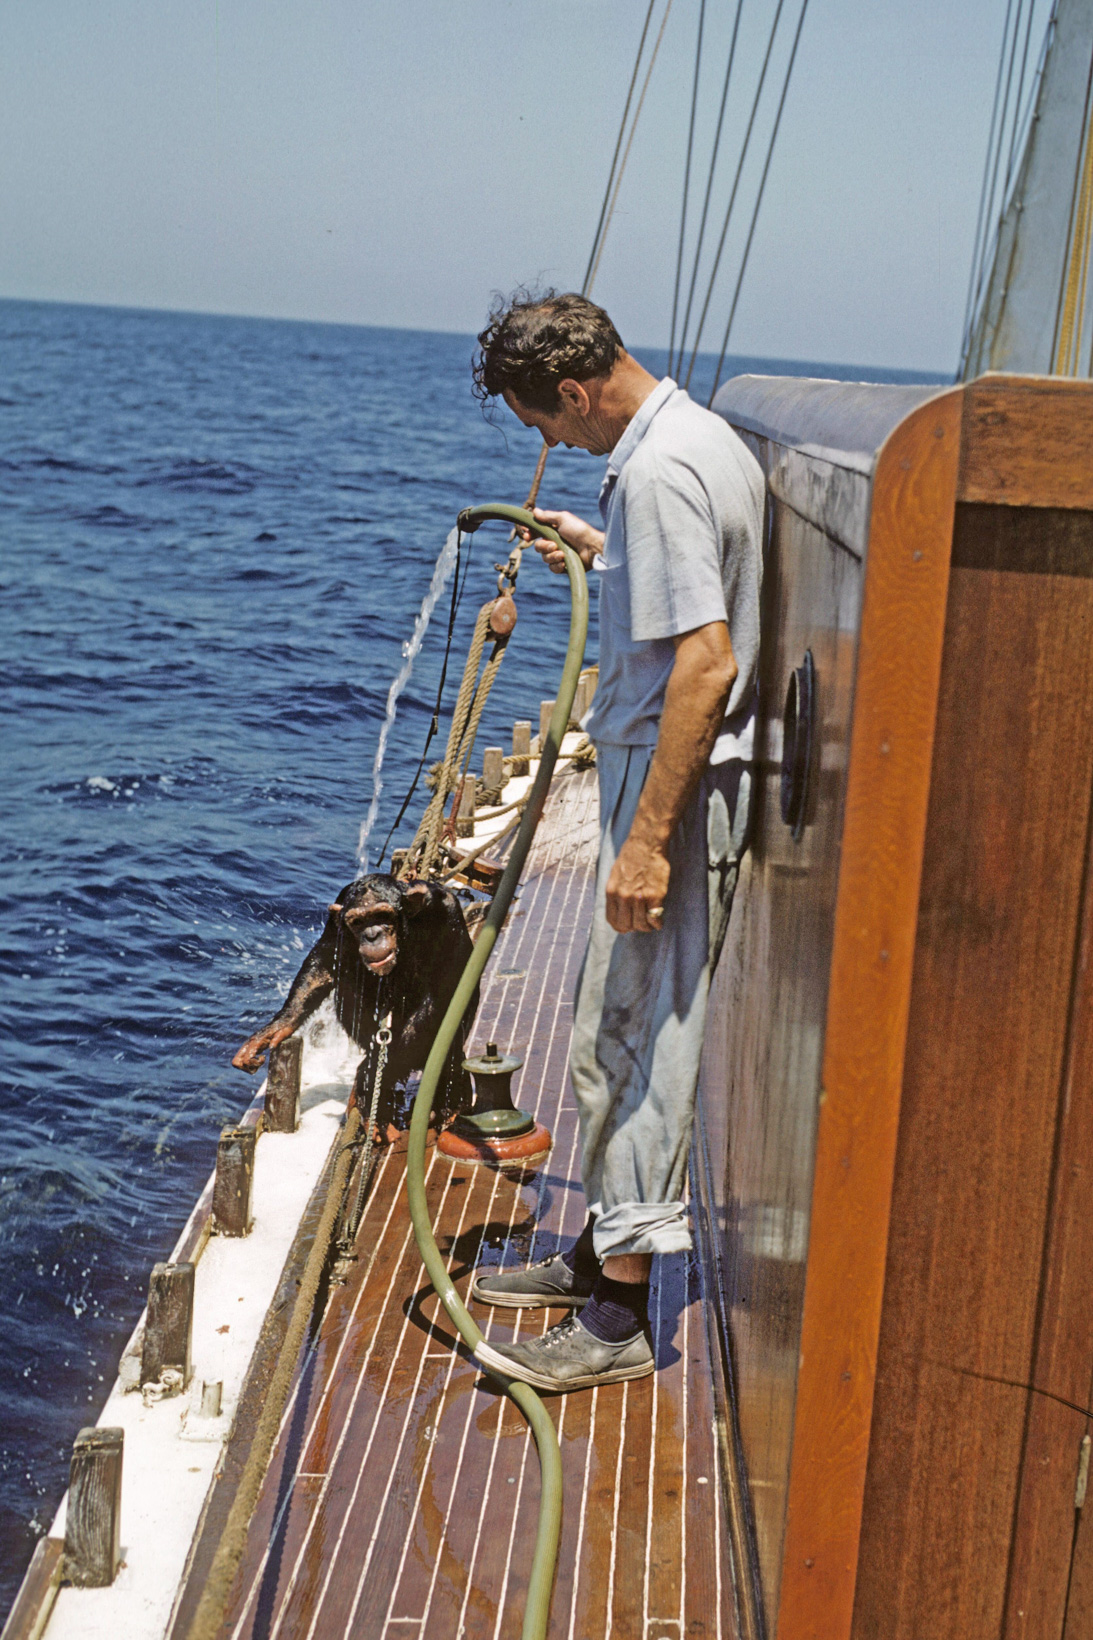 A chimpanzee is hosed down on the deck of a yacht at sea.